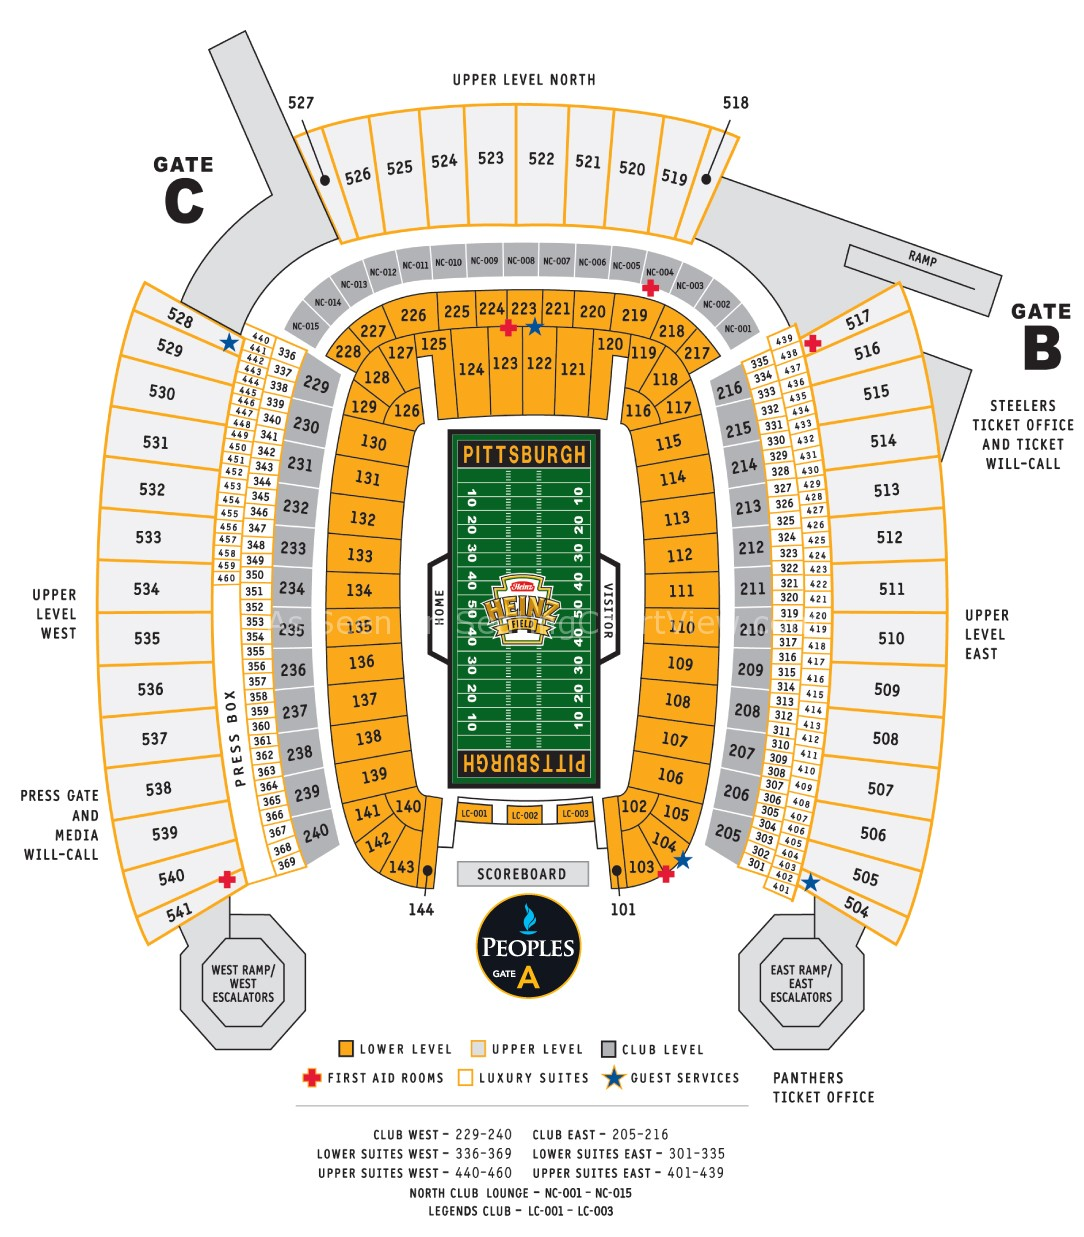 Heinz Field Seat Map Heinz Field, Pittsburgh PA | Seating Chart View Heinz Field Seat Map